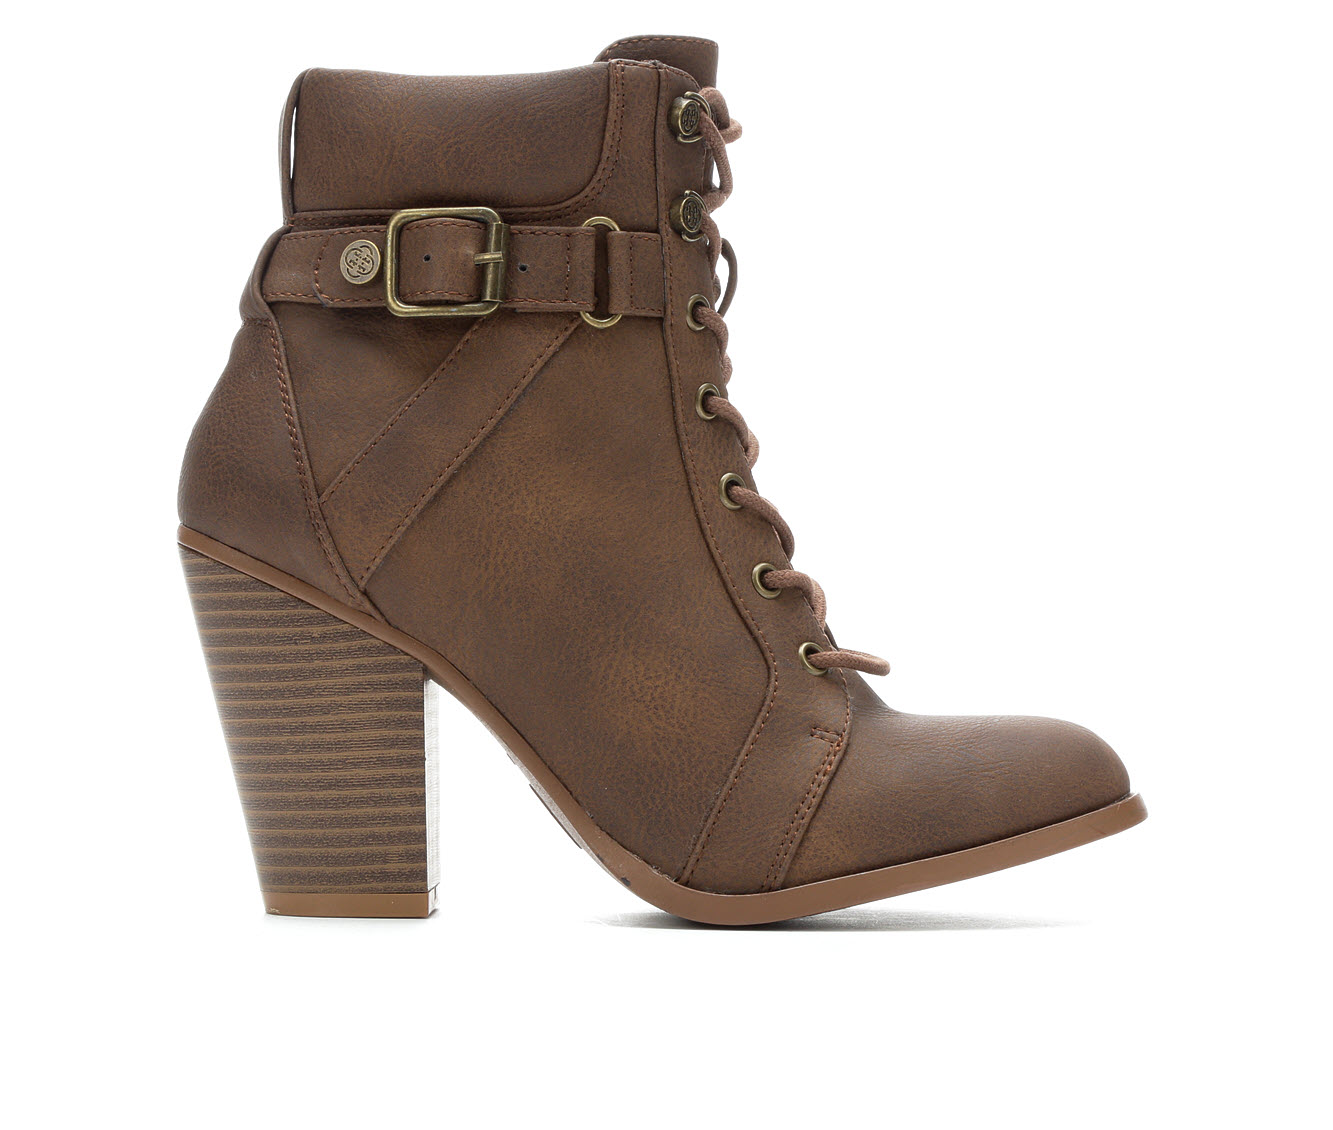 Daisy Fuentes Cloudi Women's Boot (Brown Faux Leather)